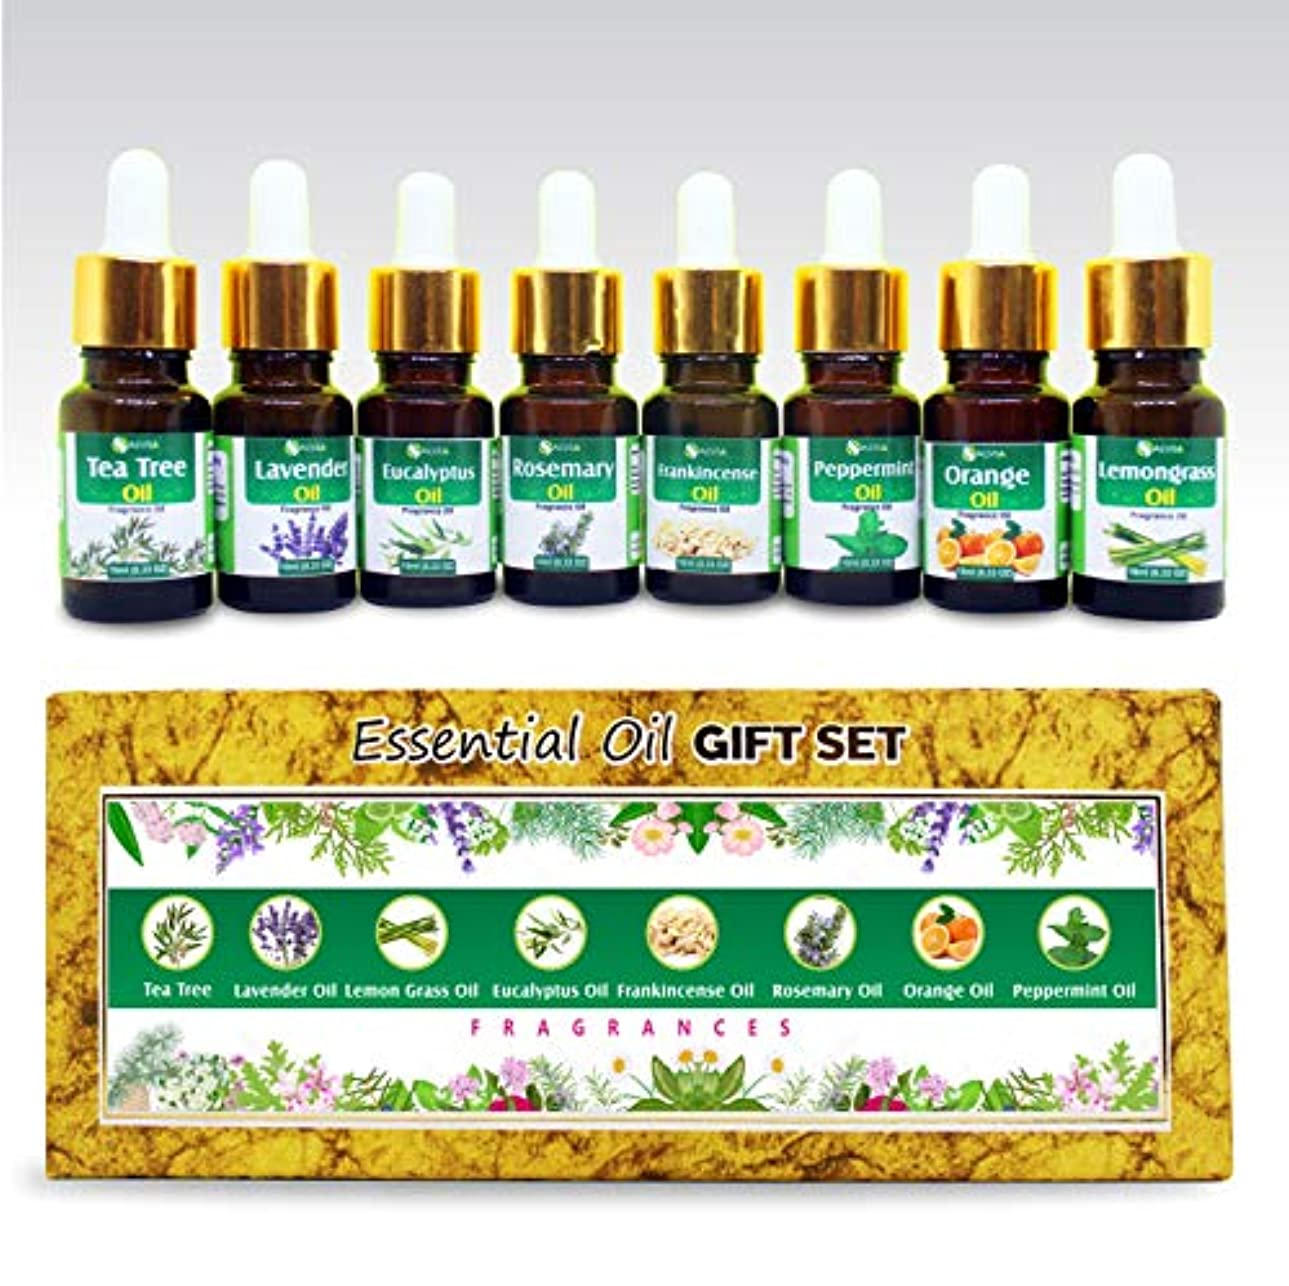 Aromatherapy Fragrance Oils - Pack of 8 Essential Oils 100% Natural Therapeutic Oils - 10 ML each (Tea Tree, Lavender...